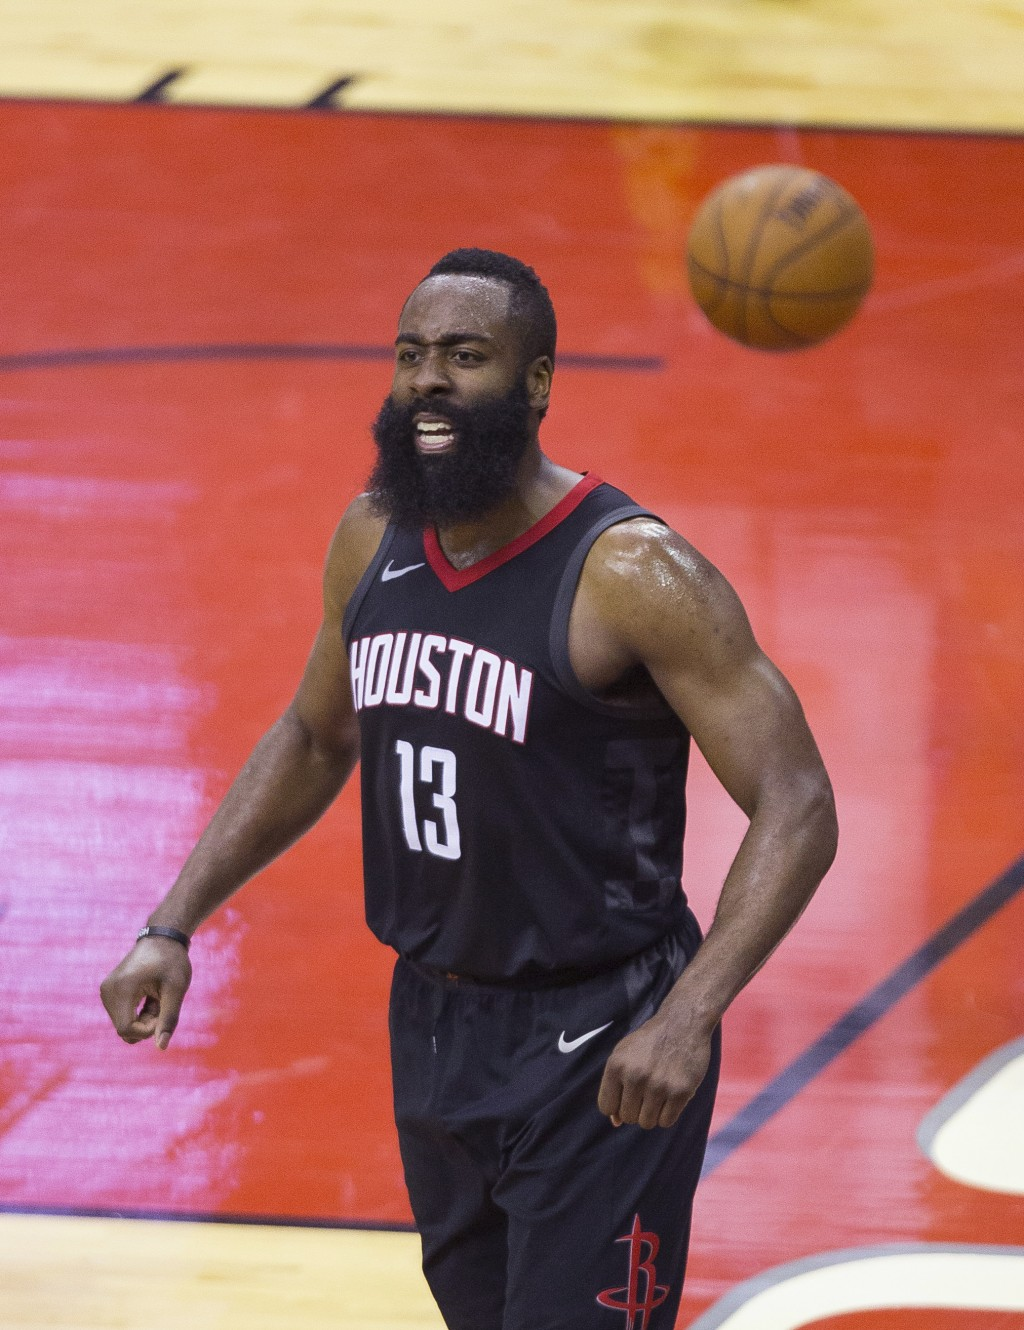 Houston Rockets guard James Harden (13) celebrates after a drawing a foul against the Minnesota Timberwolves on a dunk during Game 5 of an NBA basketb...